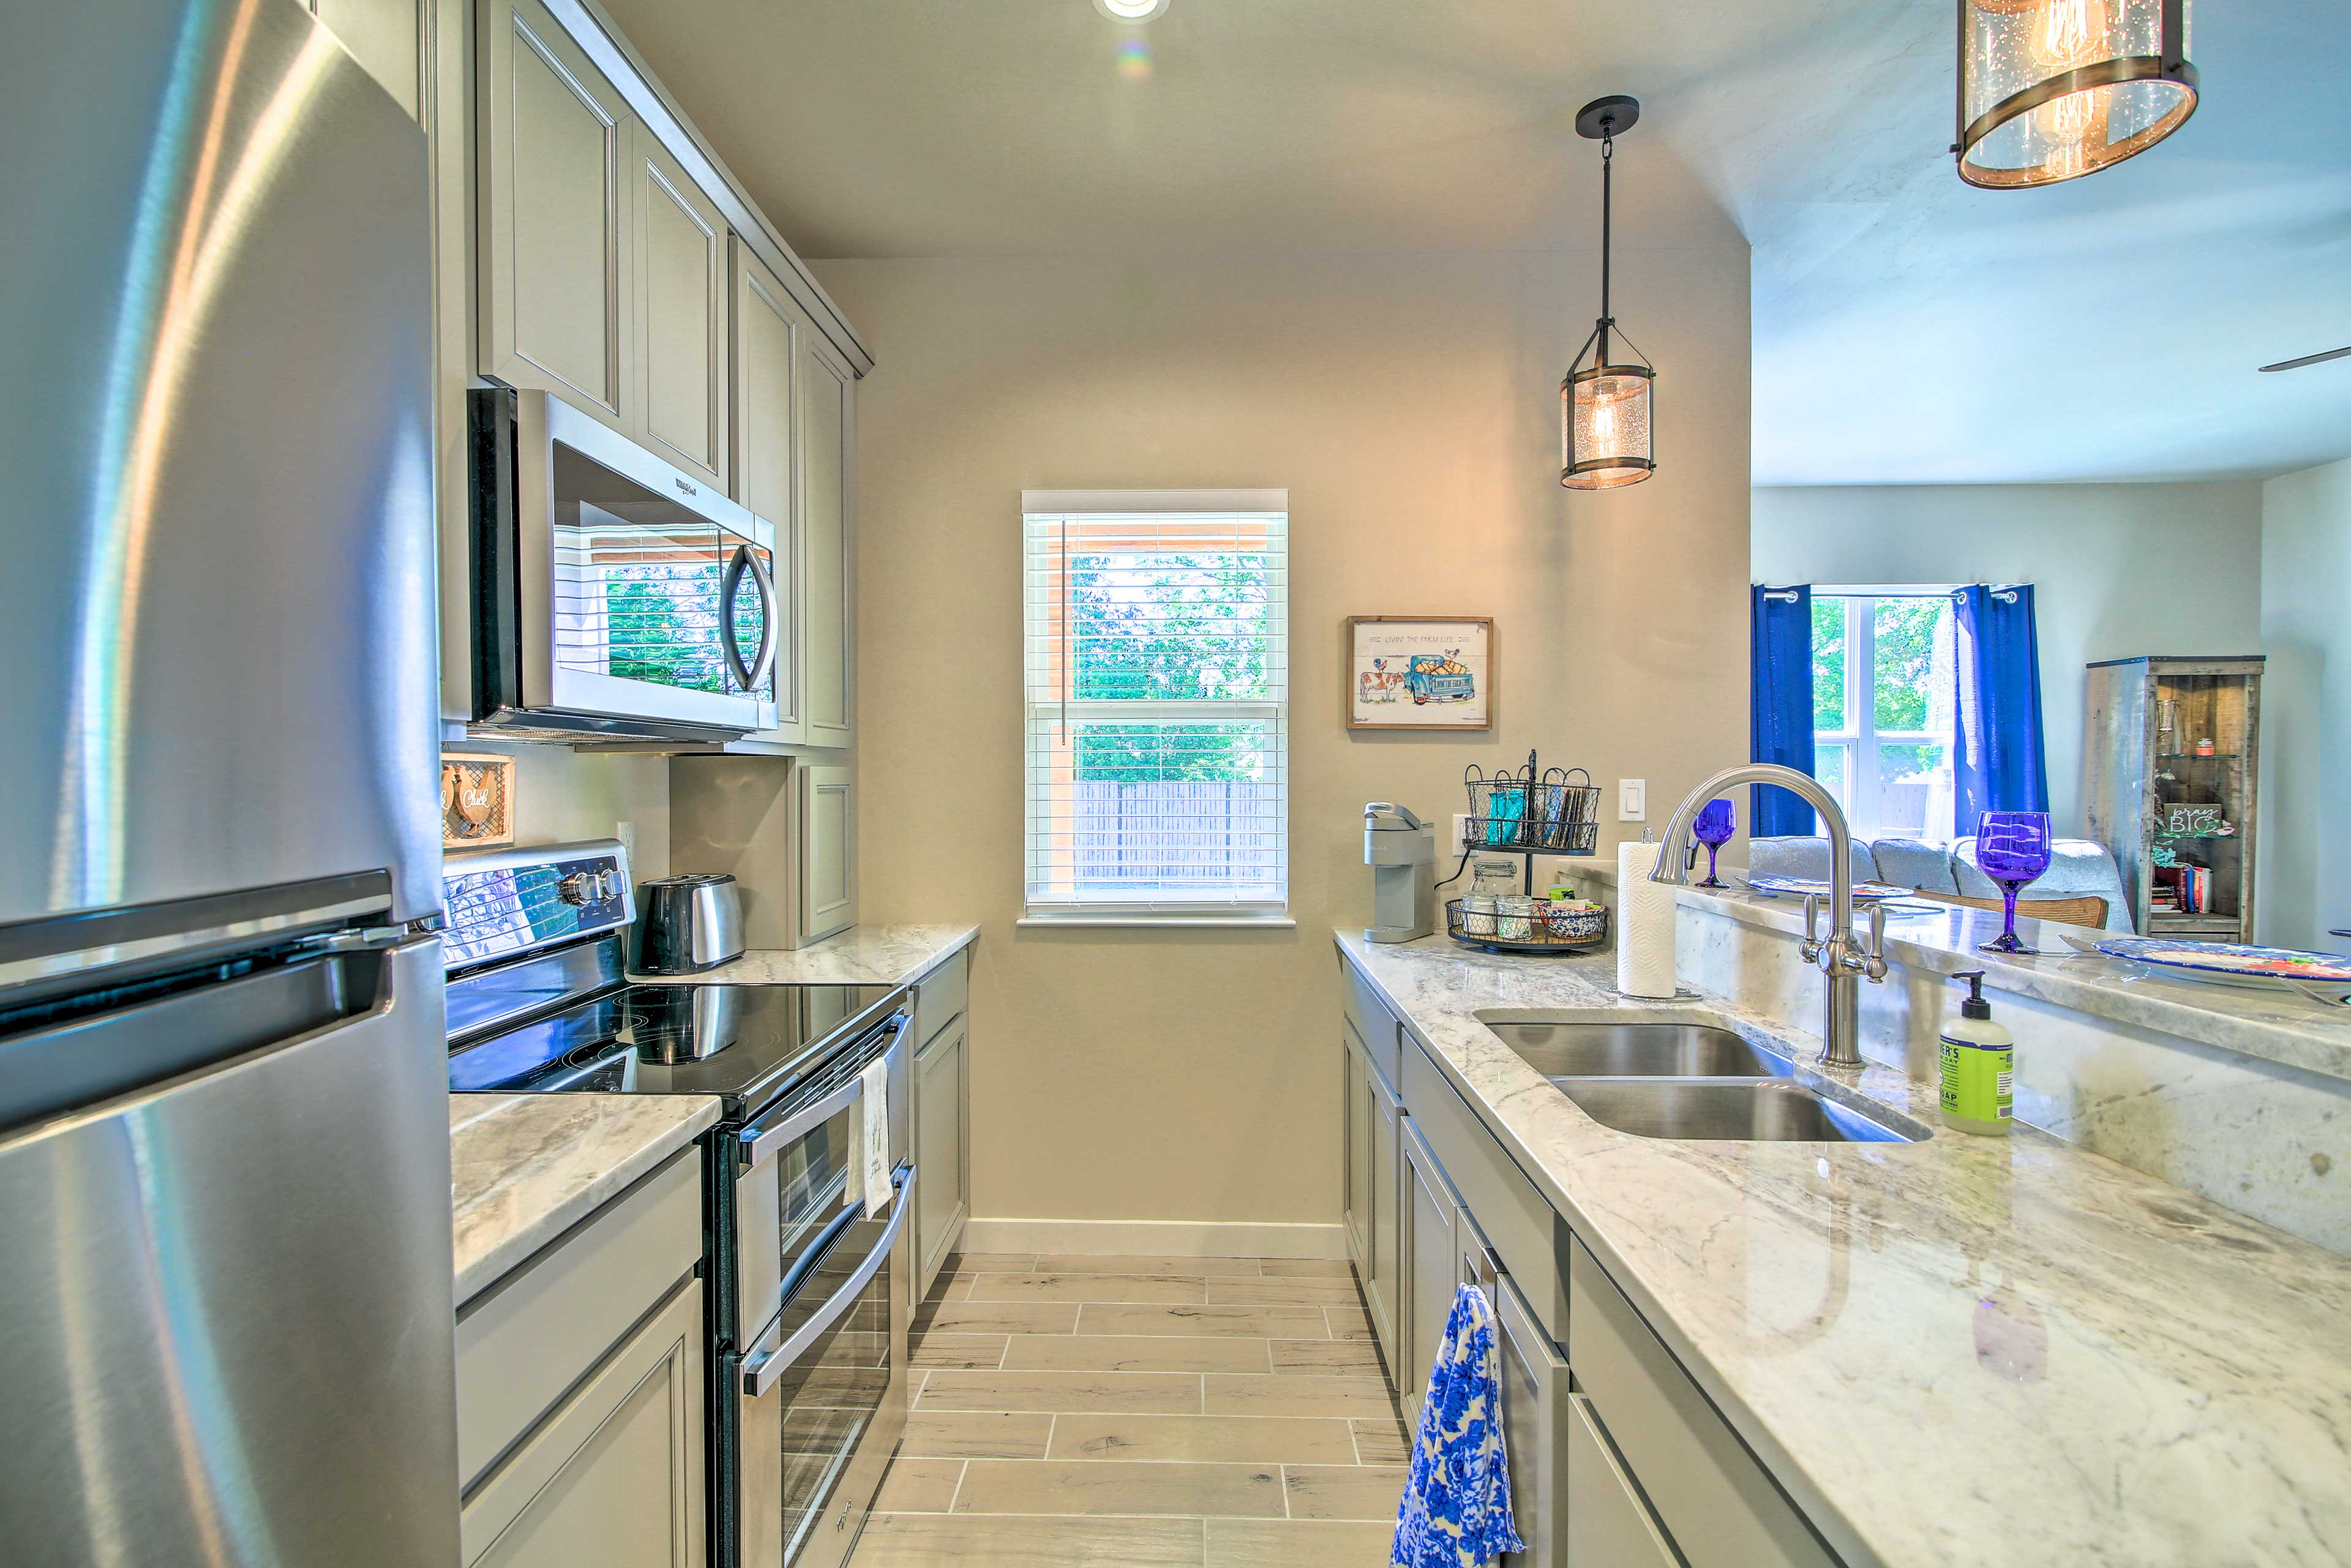 You'll love cooking in this gorgeous kitchen!